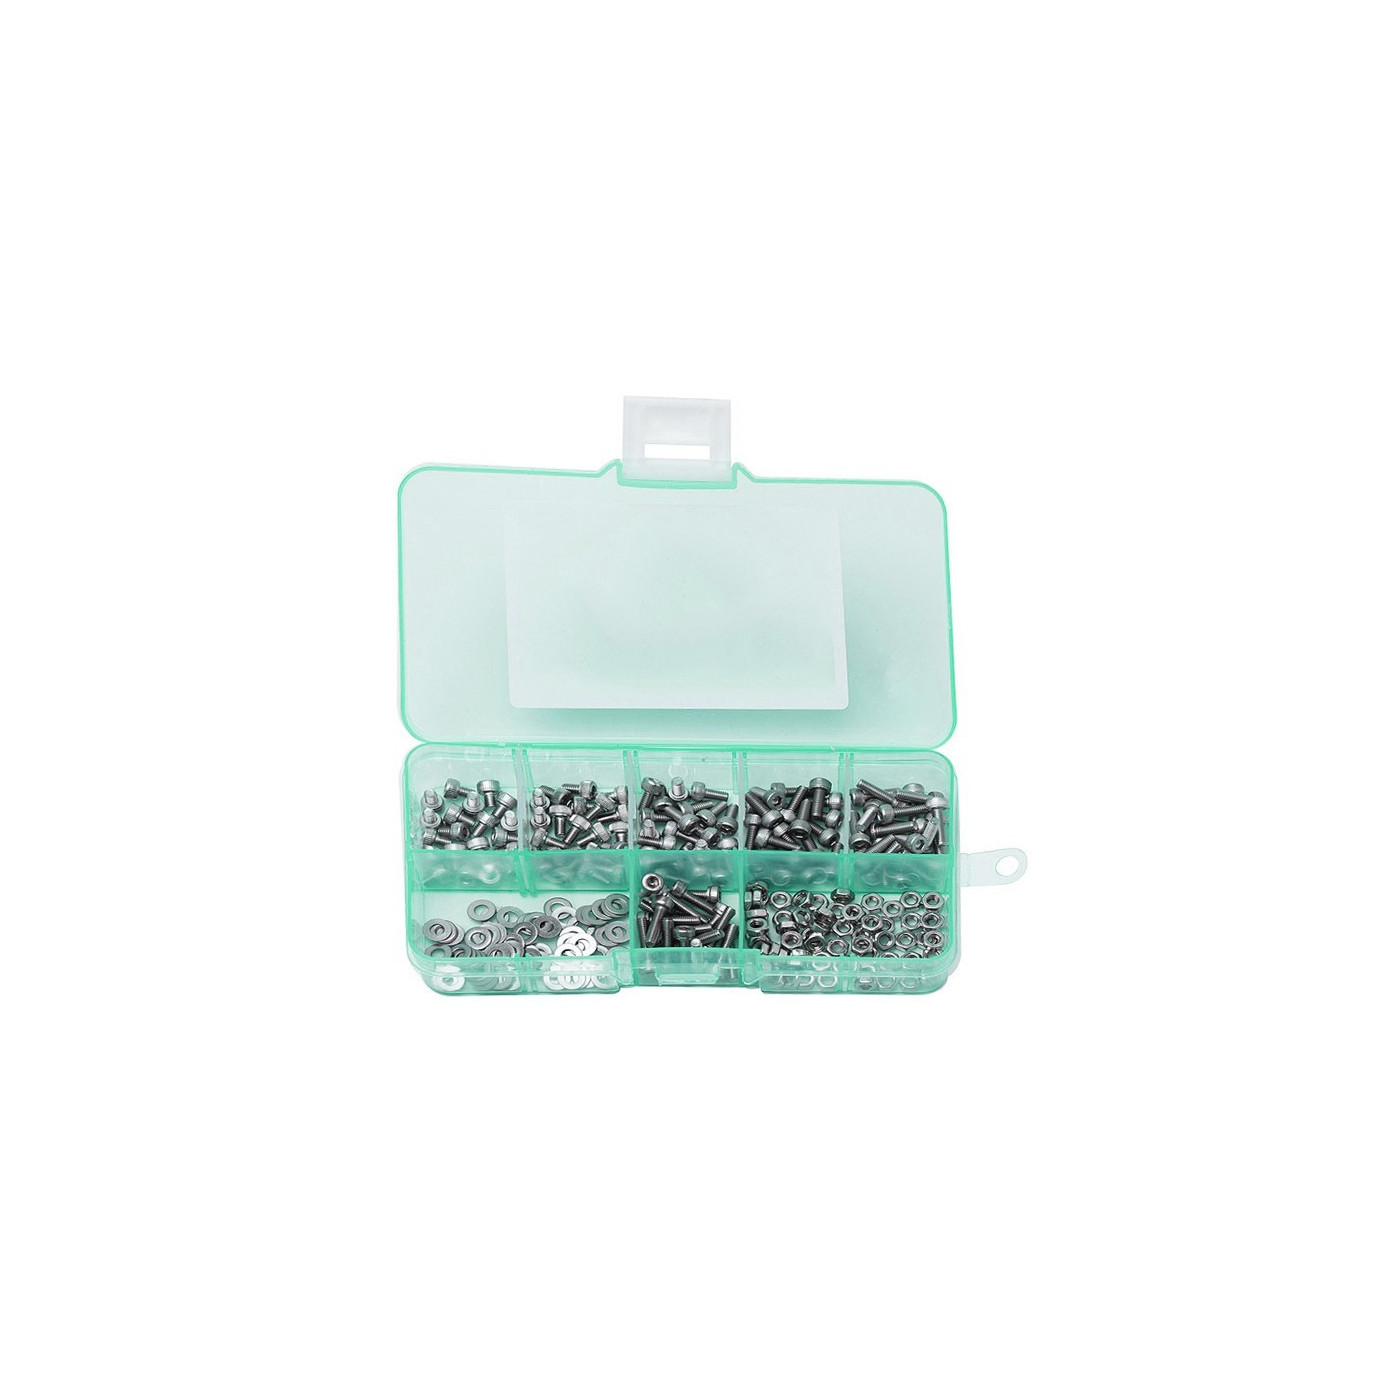 Set M1.6 bolts, nuts and washers, 250 pcs